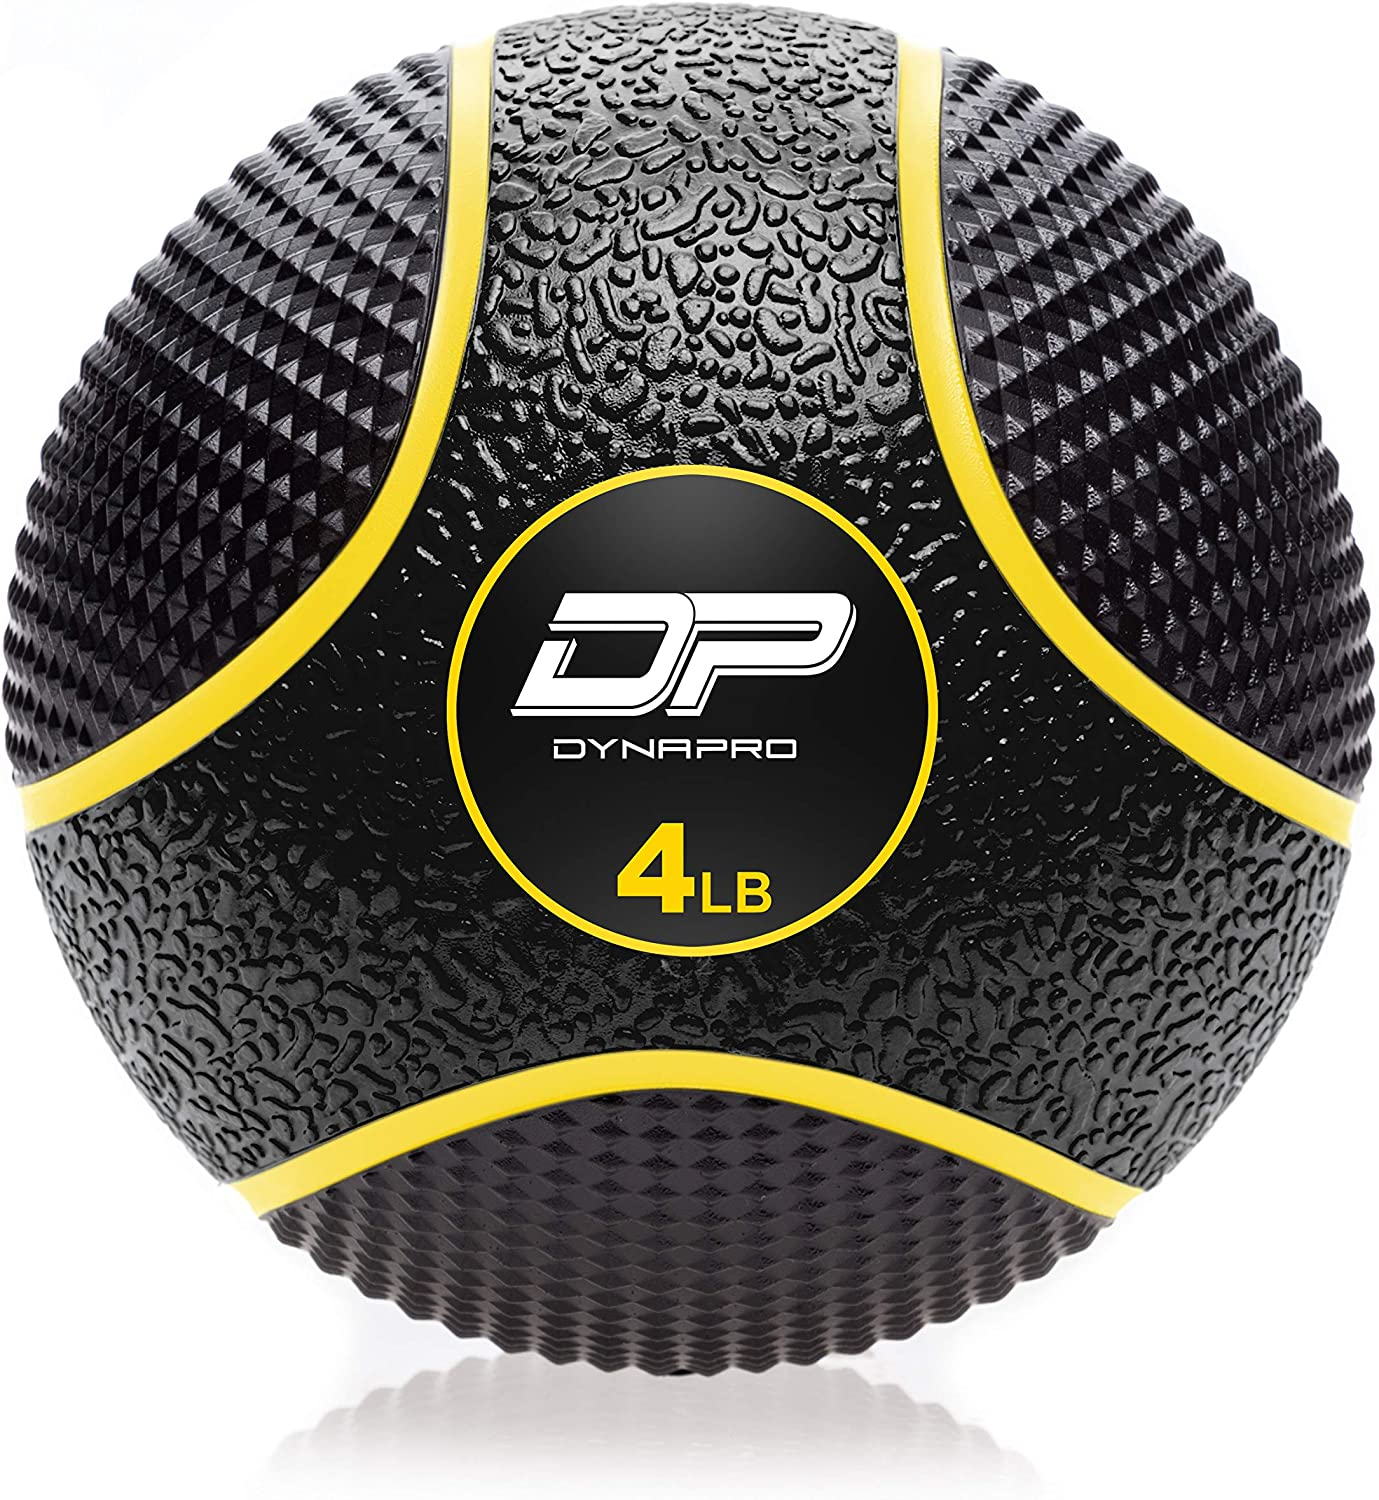 DYNAPRO Medicine Ball Exercise Ball, Durable Rubber, Consistent Weight Distribution, Comfort Textured Grip for Strength Training